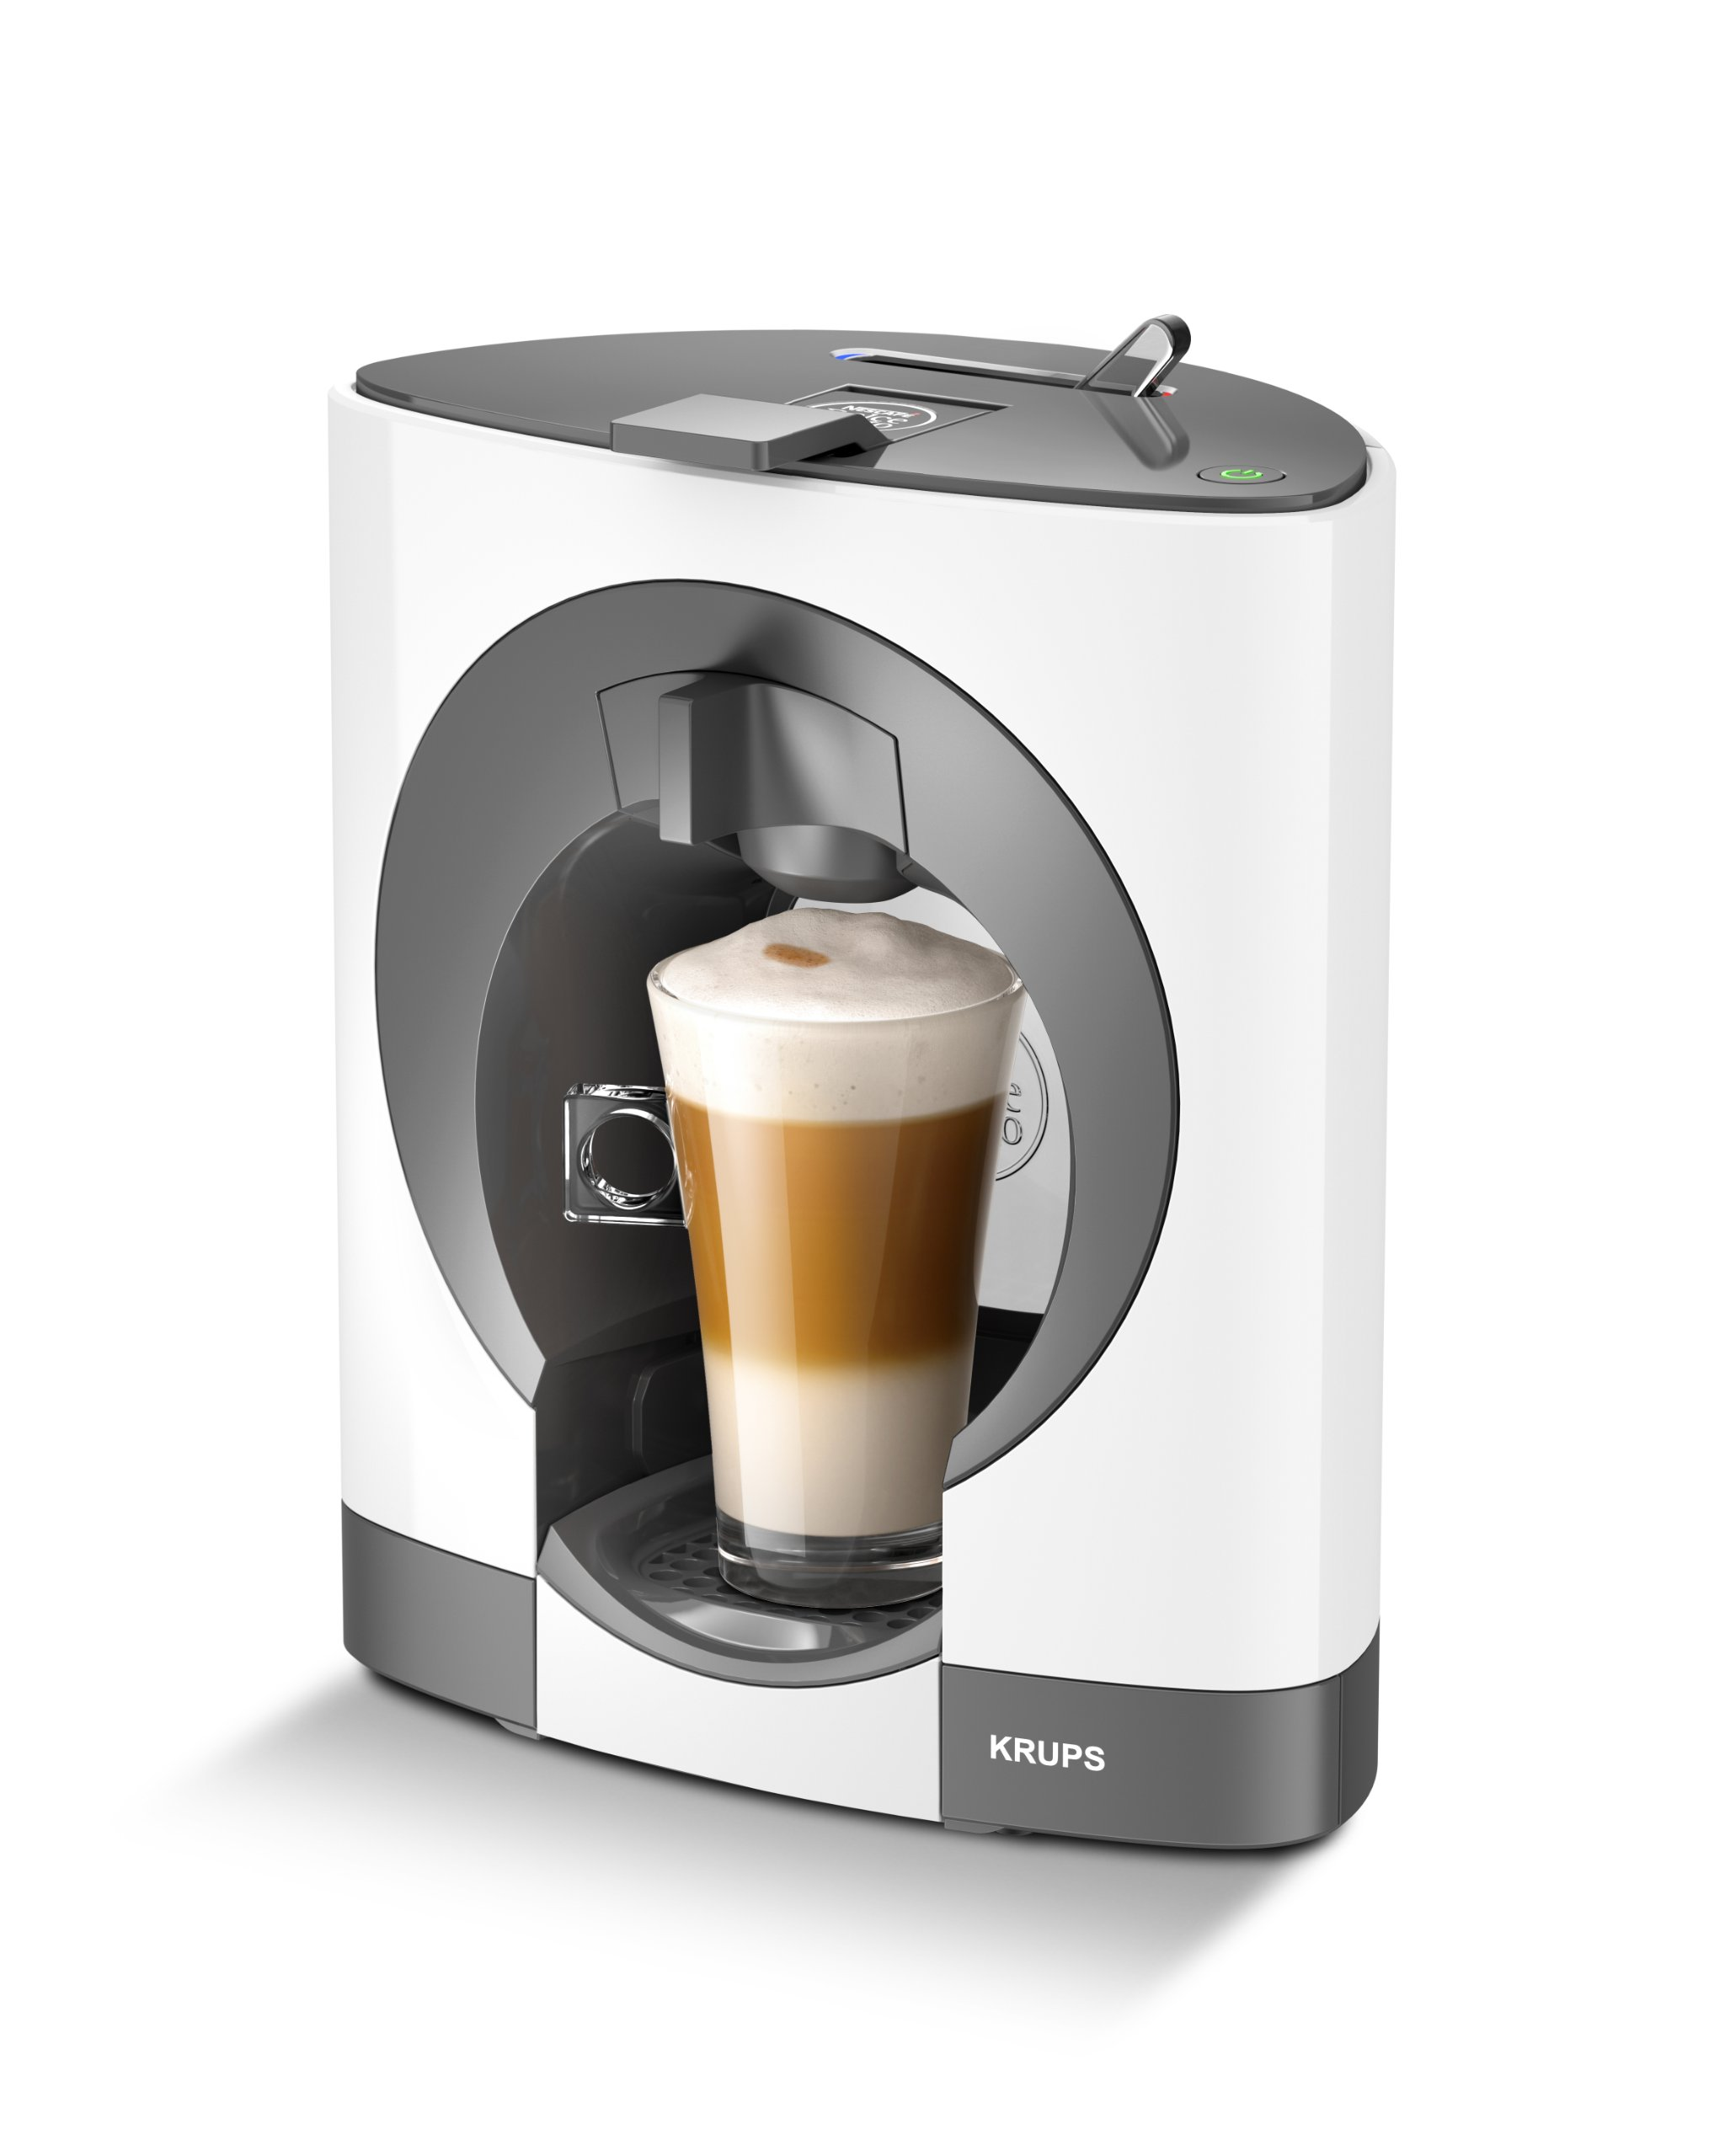 brand new nescafe dolce gusto oblo coffee capsule machine by krups white ebay. Black Bedroom Furniture Sets. Home Design Ideas